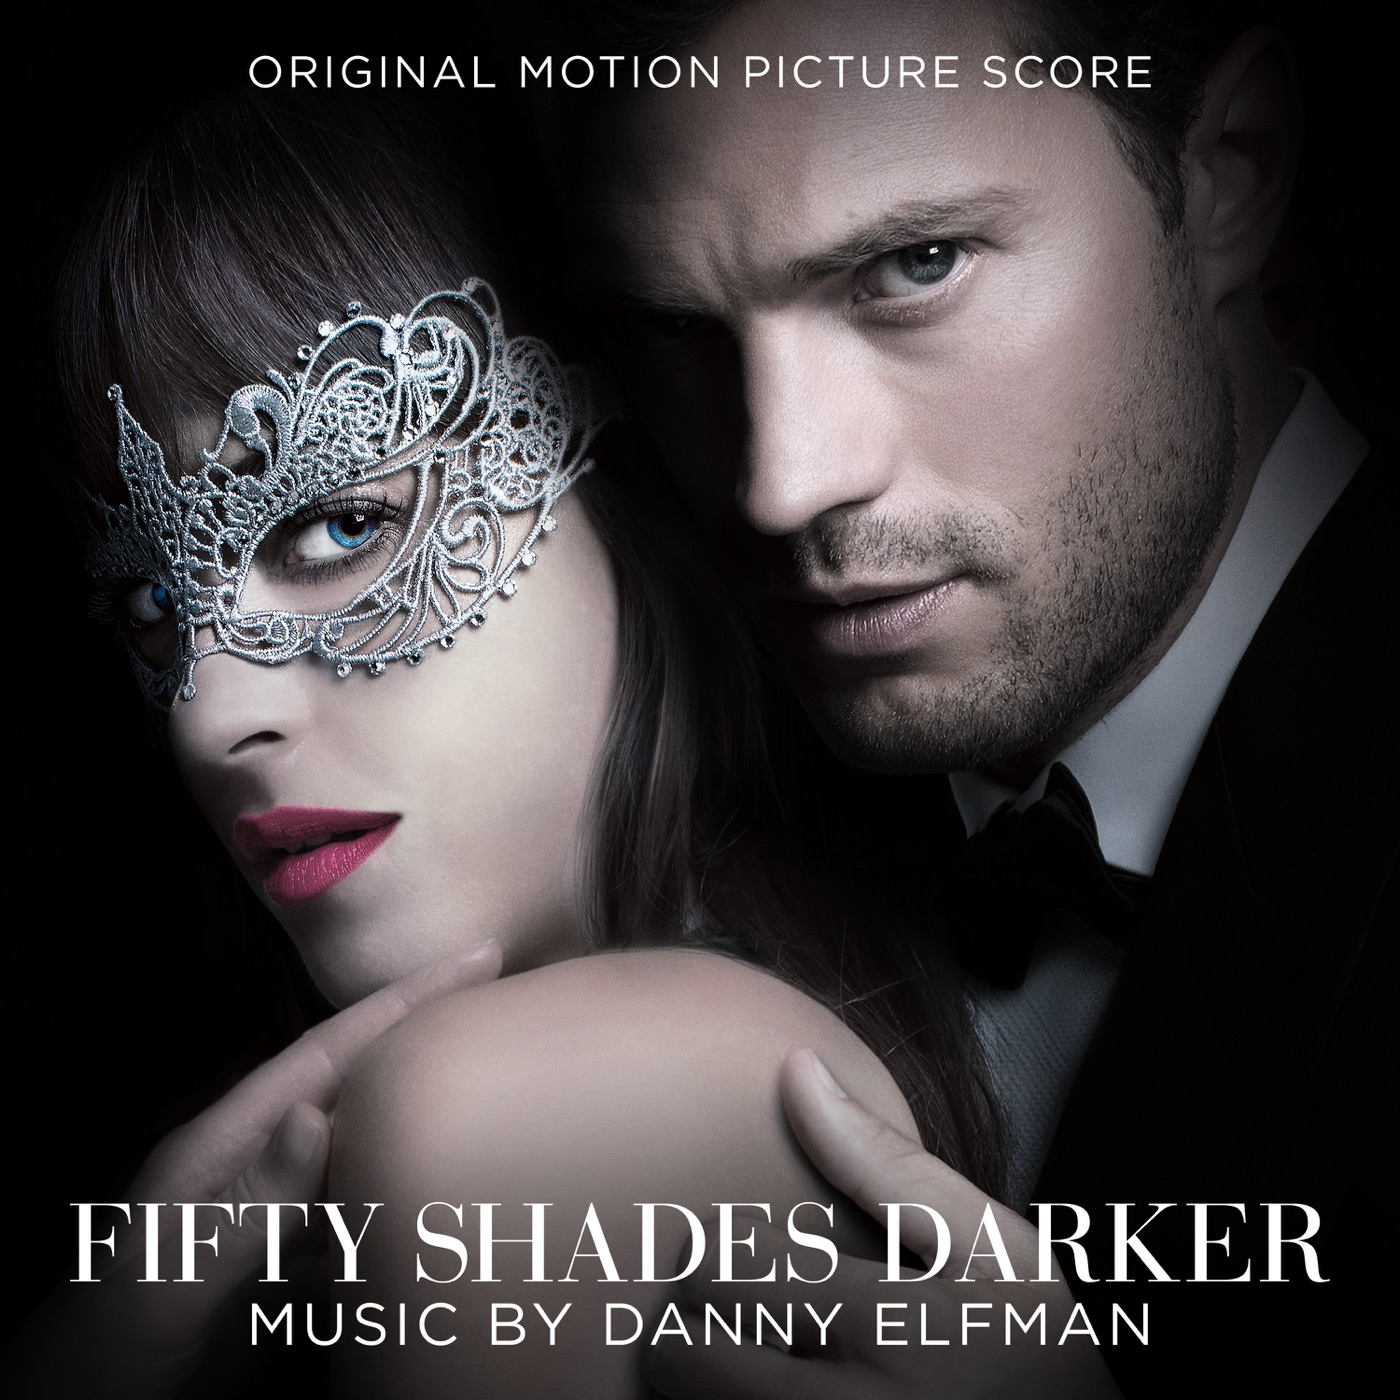 丹尼·葉夫曼 - Fifty Shades Darker (Original Motion Picture Score)